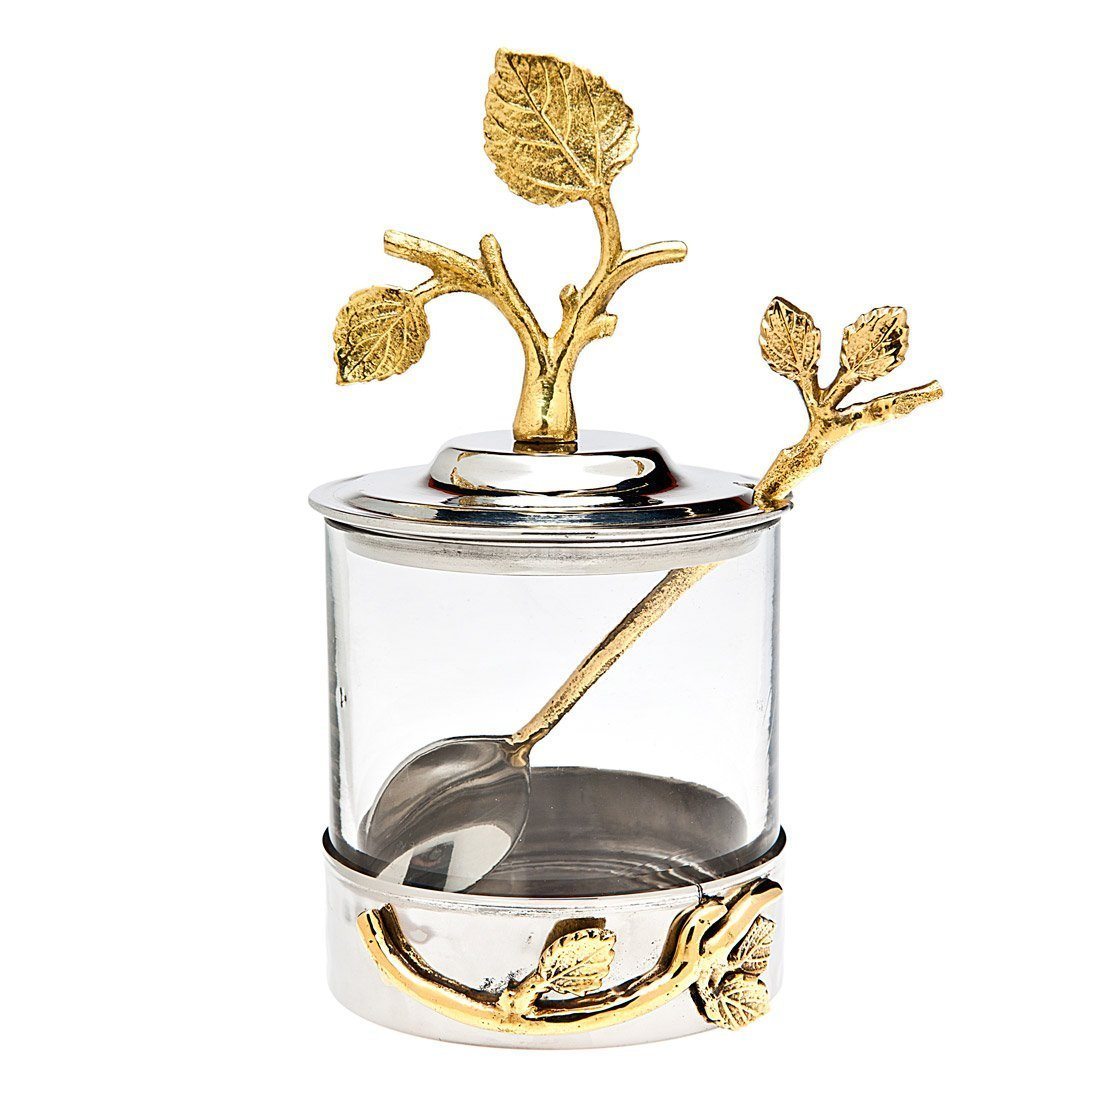 Godinger Silver Art Leaf Jam Jar With Spoon by Godinger